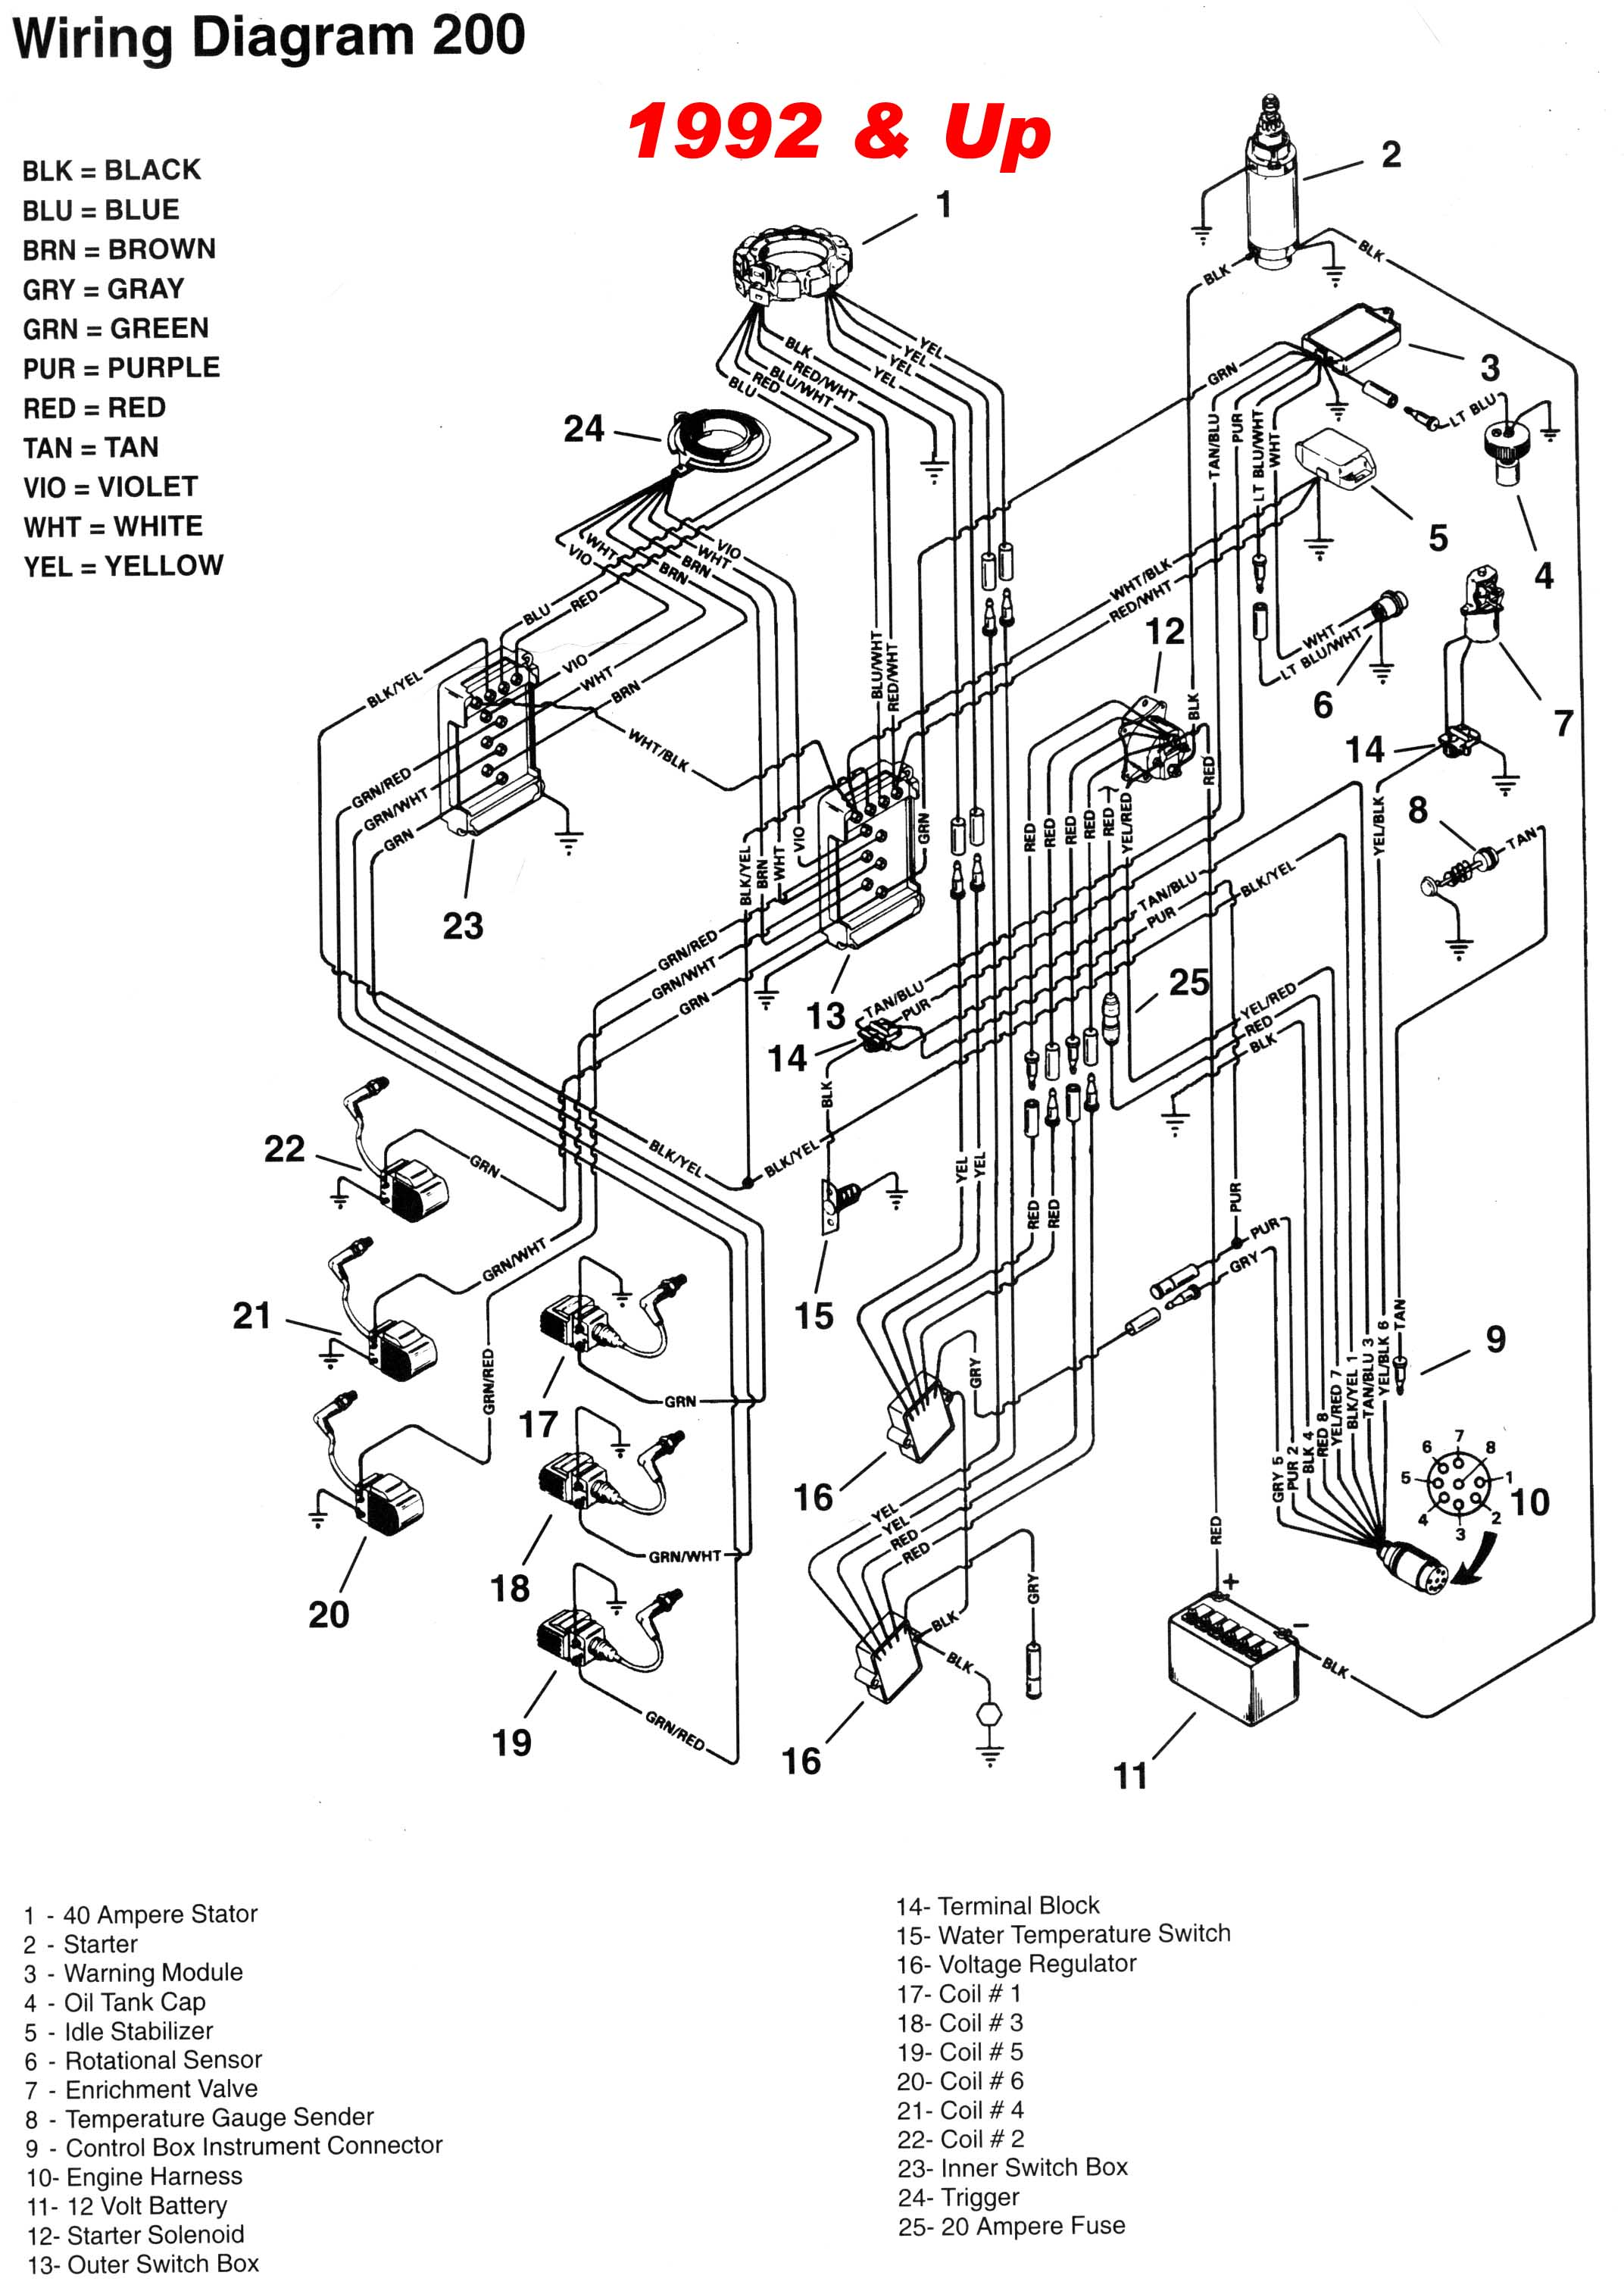 mercury_92up_200_wiring Quicksilver Ignition Switch Wiring Diagram on cub cadet, universal 4 wire, chevy truck, tractor universal, harley softail, john deere lawn tractor, riding mower, pontoon boat,